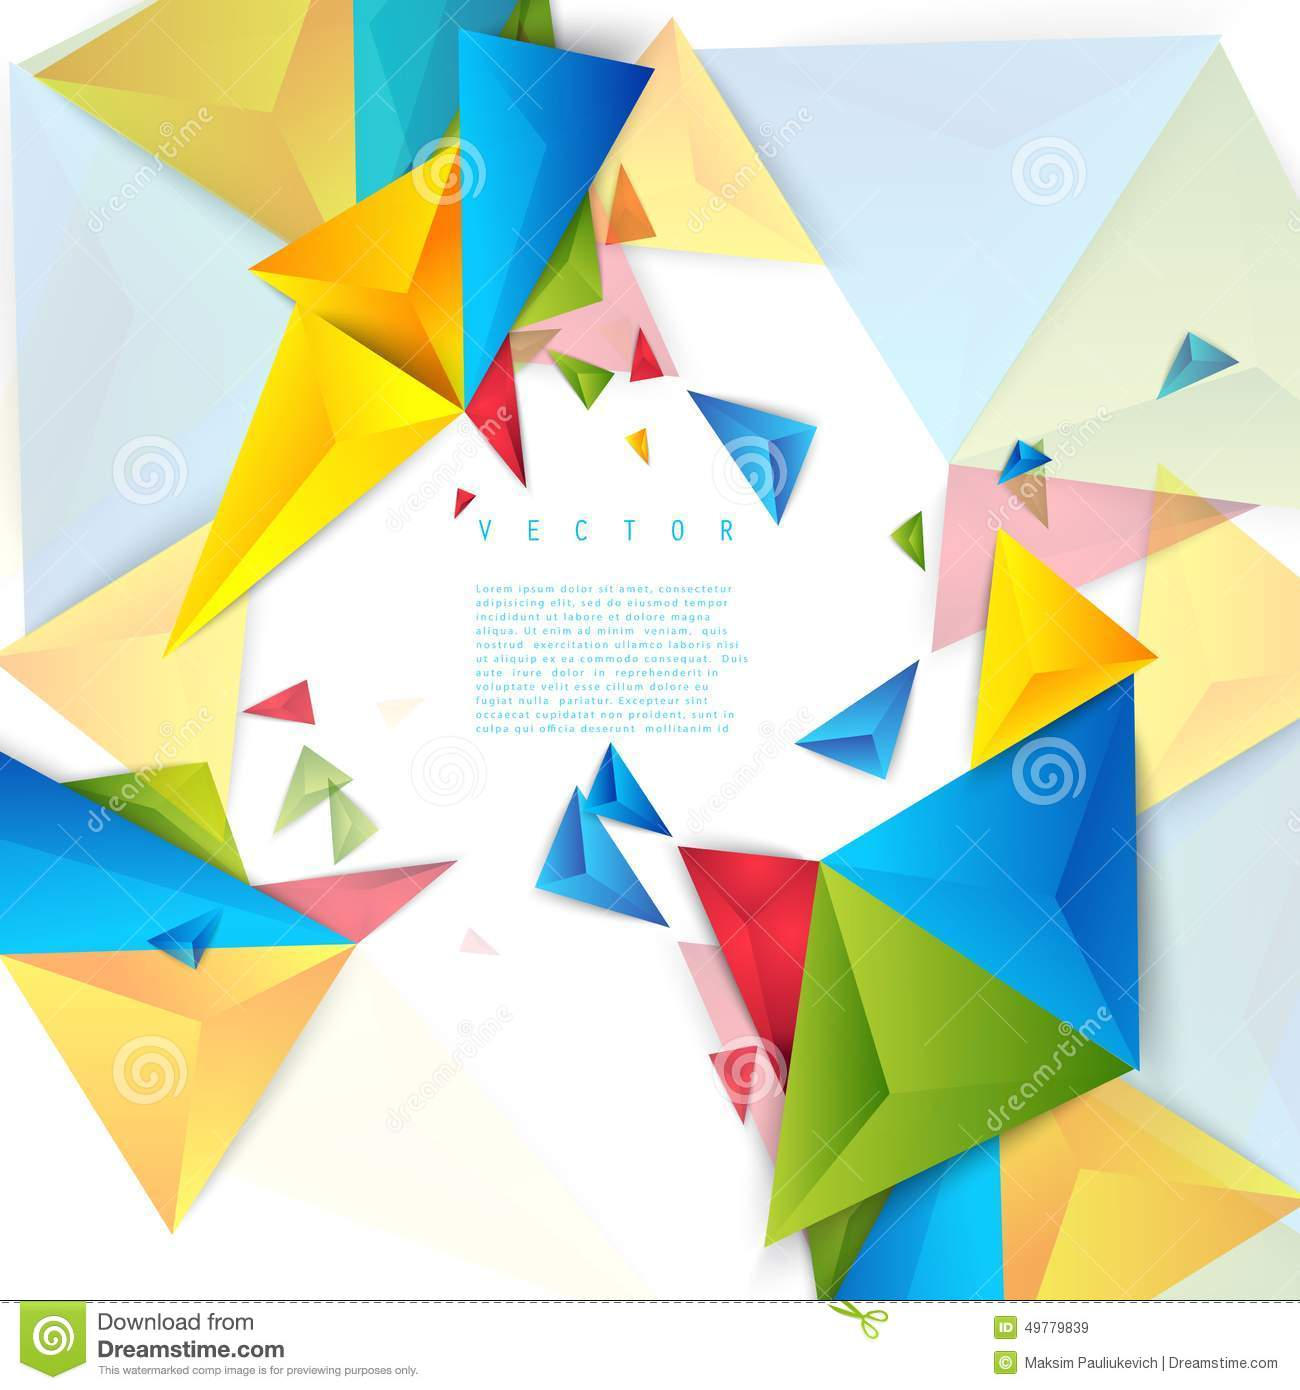 polygon shape abstract design - photo #14